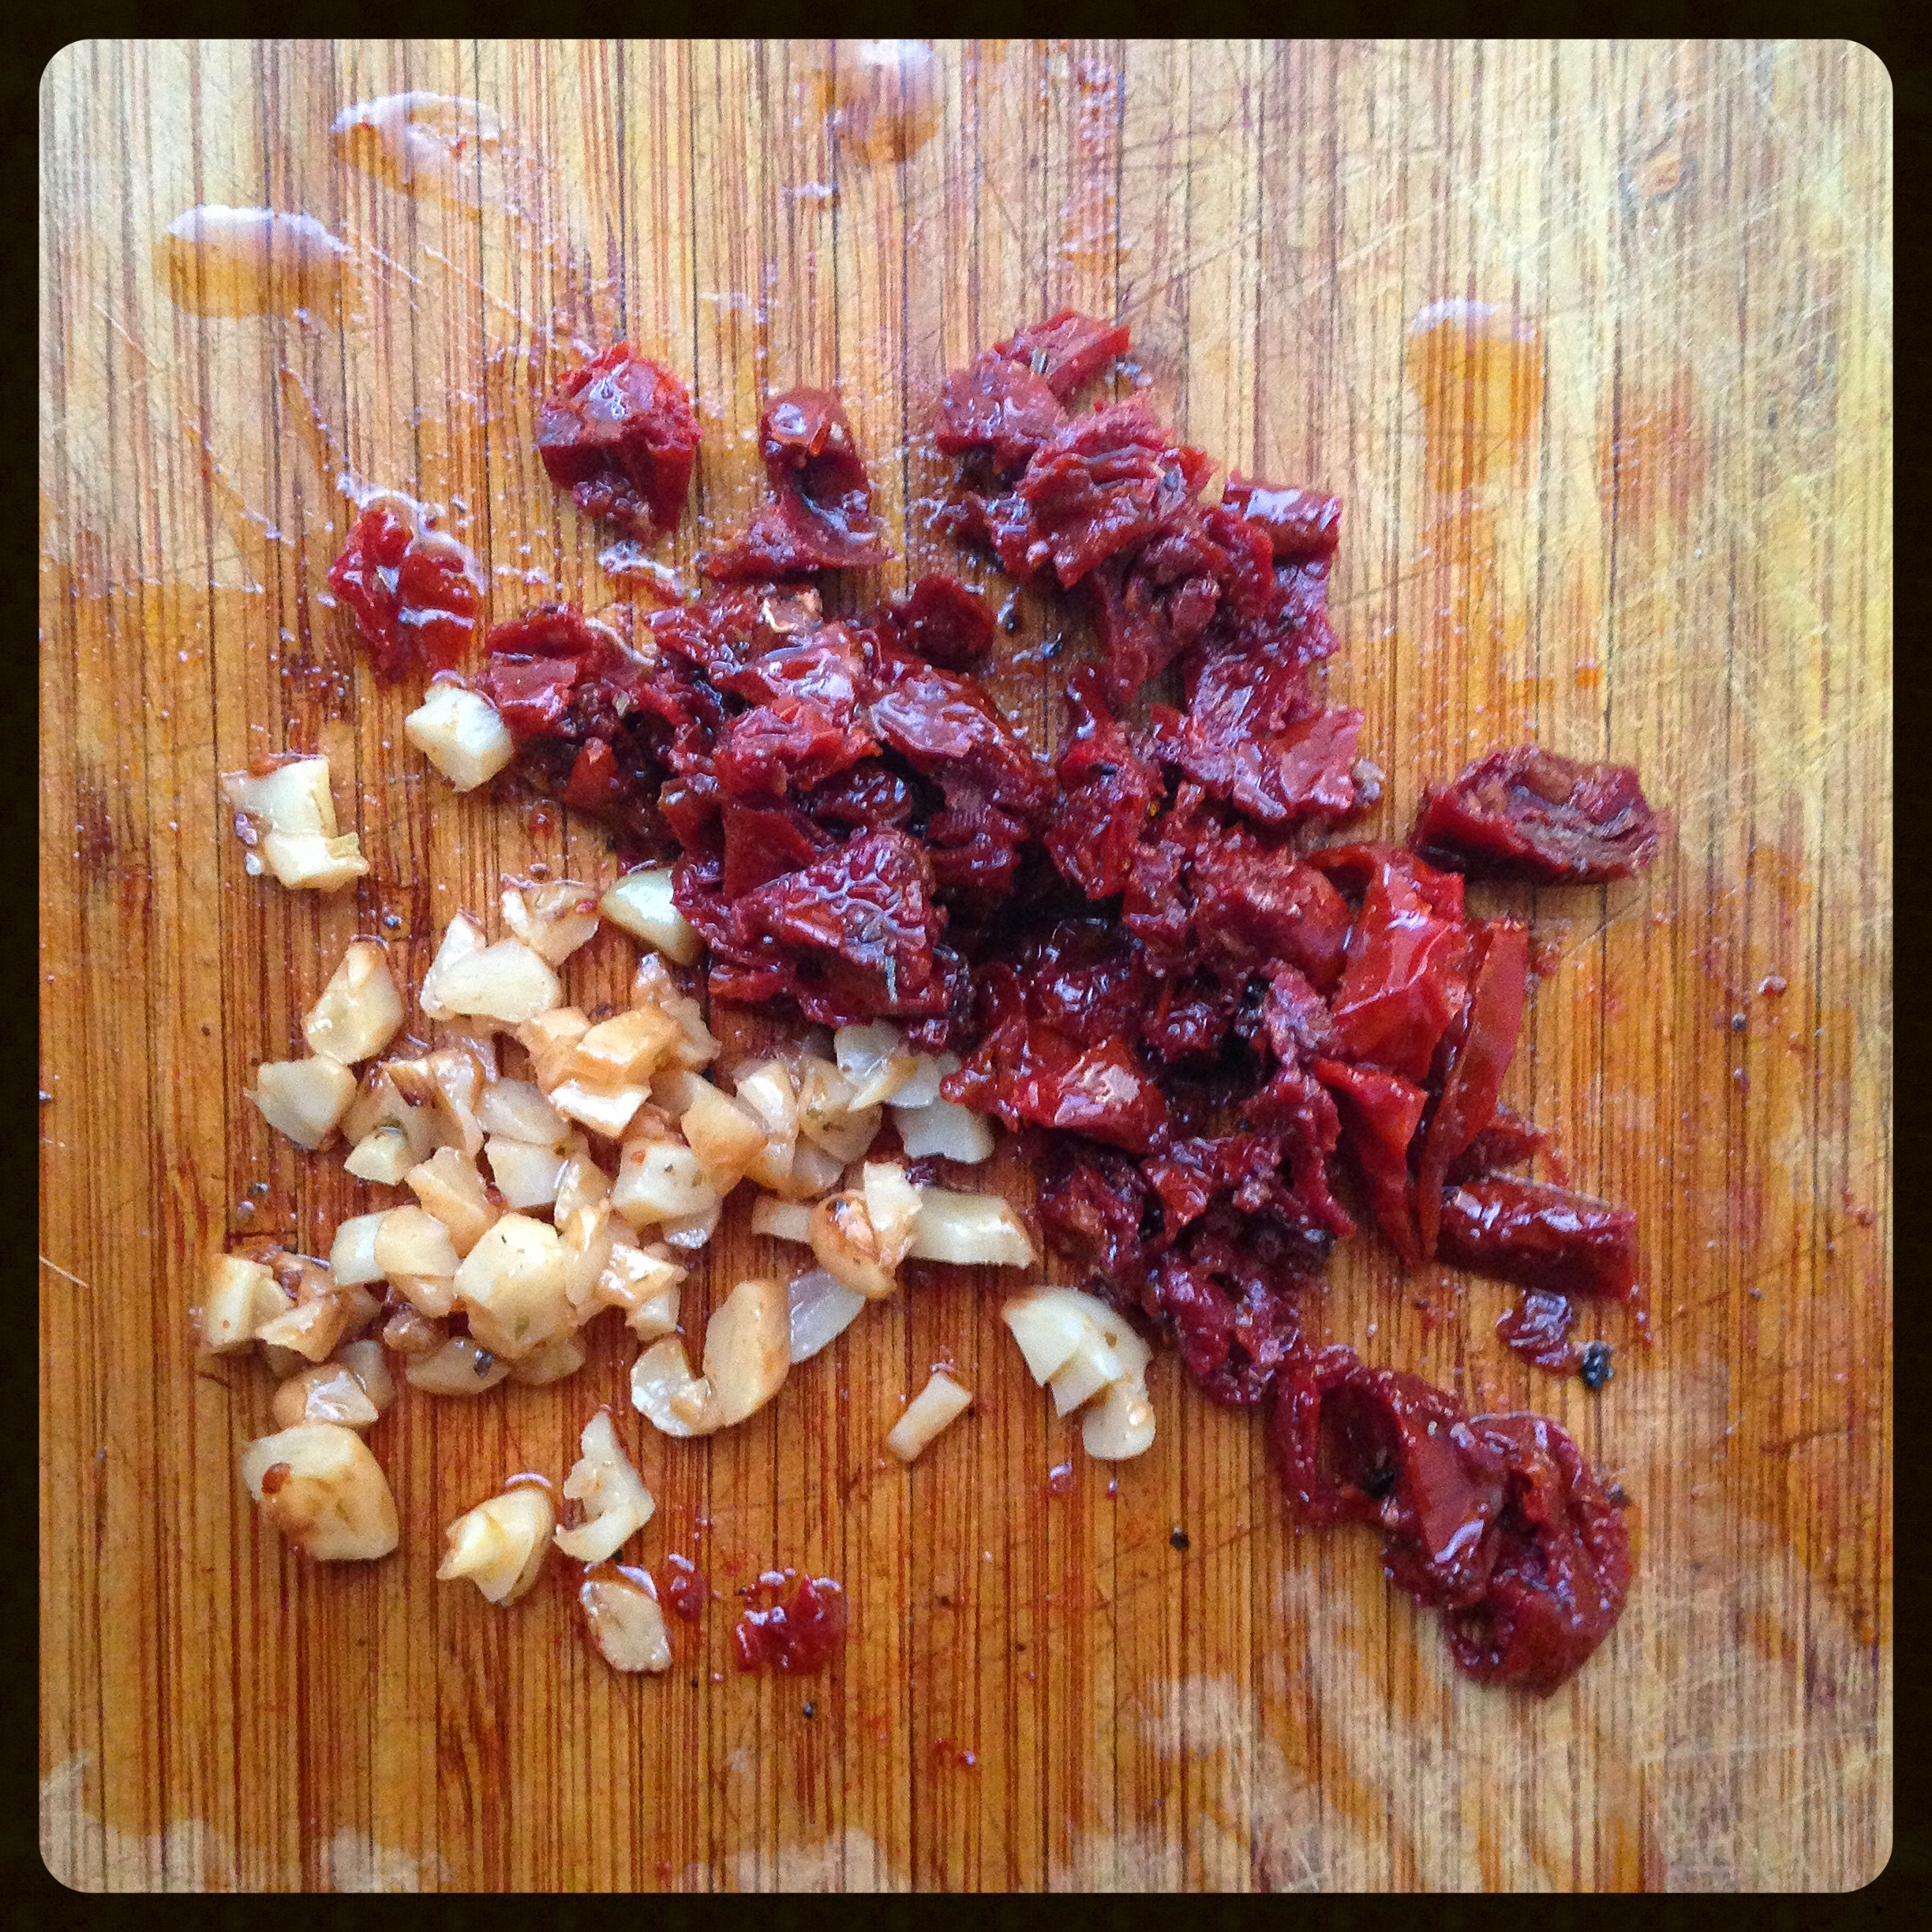 Roasted Garlic and Sun-dried Tomatoes